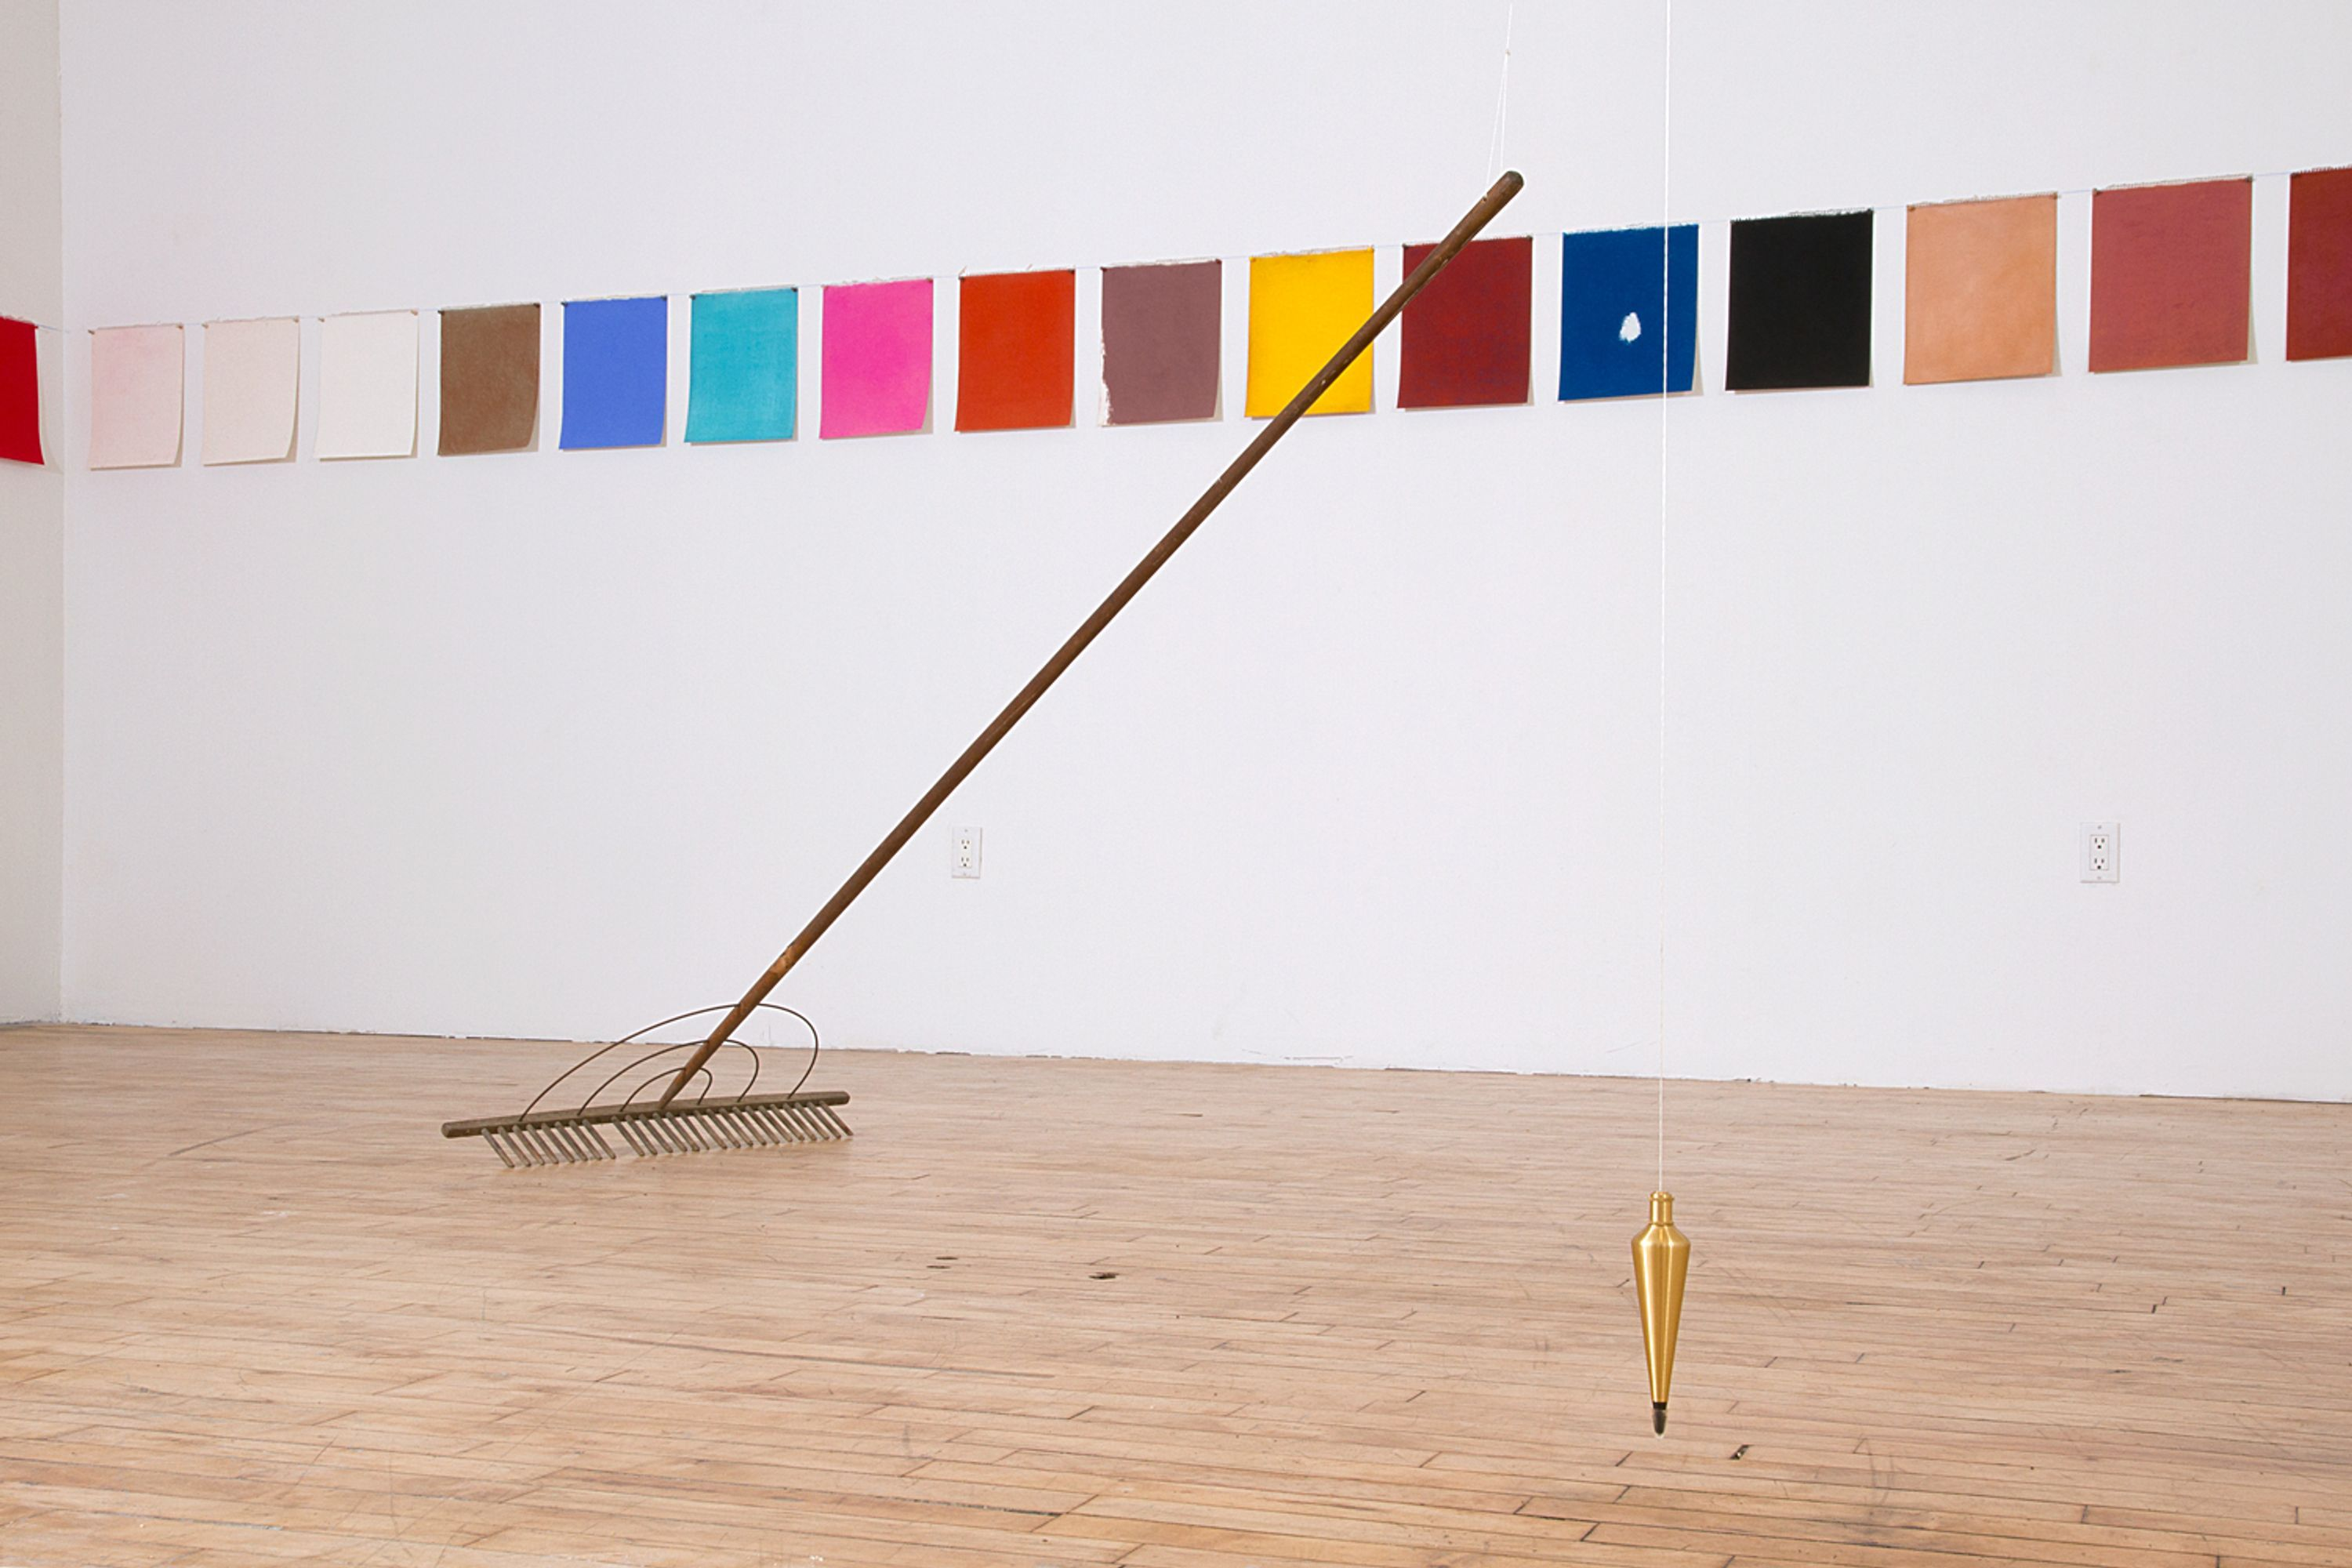 """An installation view of Kathleen White's """"A Rake's Progress,"""" which features a long row of colorful, paper sheets, and a hanging plumb and rake in the middle of the floor"""